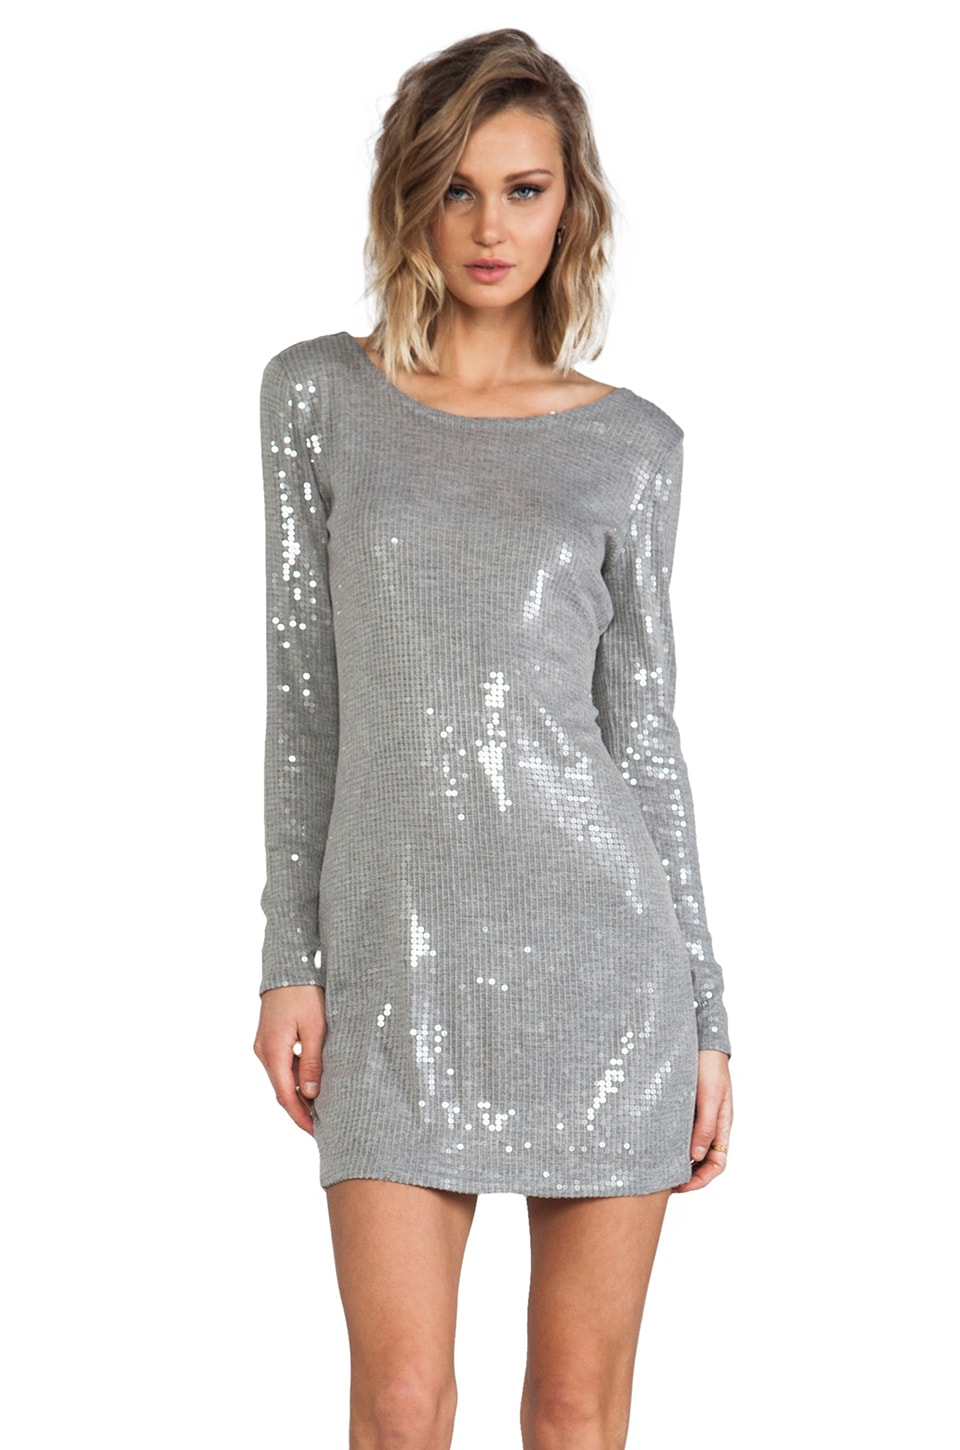 Haute Hippie All Over Clear Sequins Long Sleeve Mini Dress in Light Heather Grey